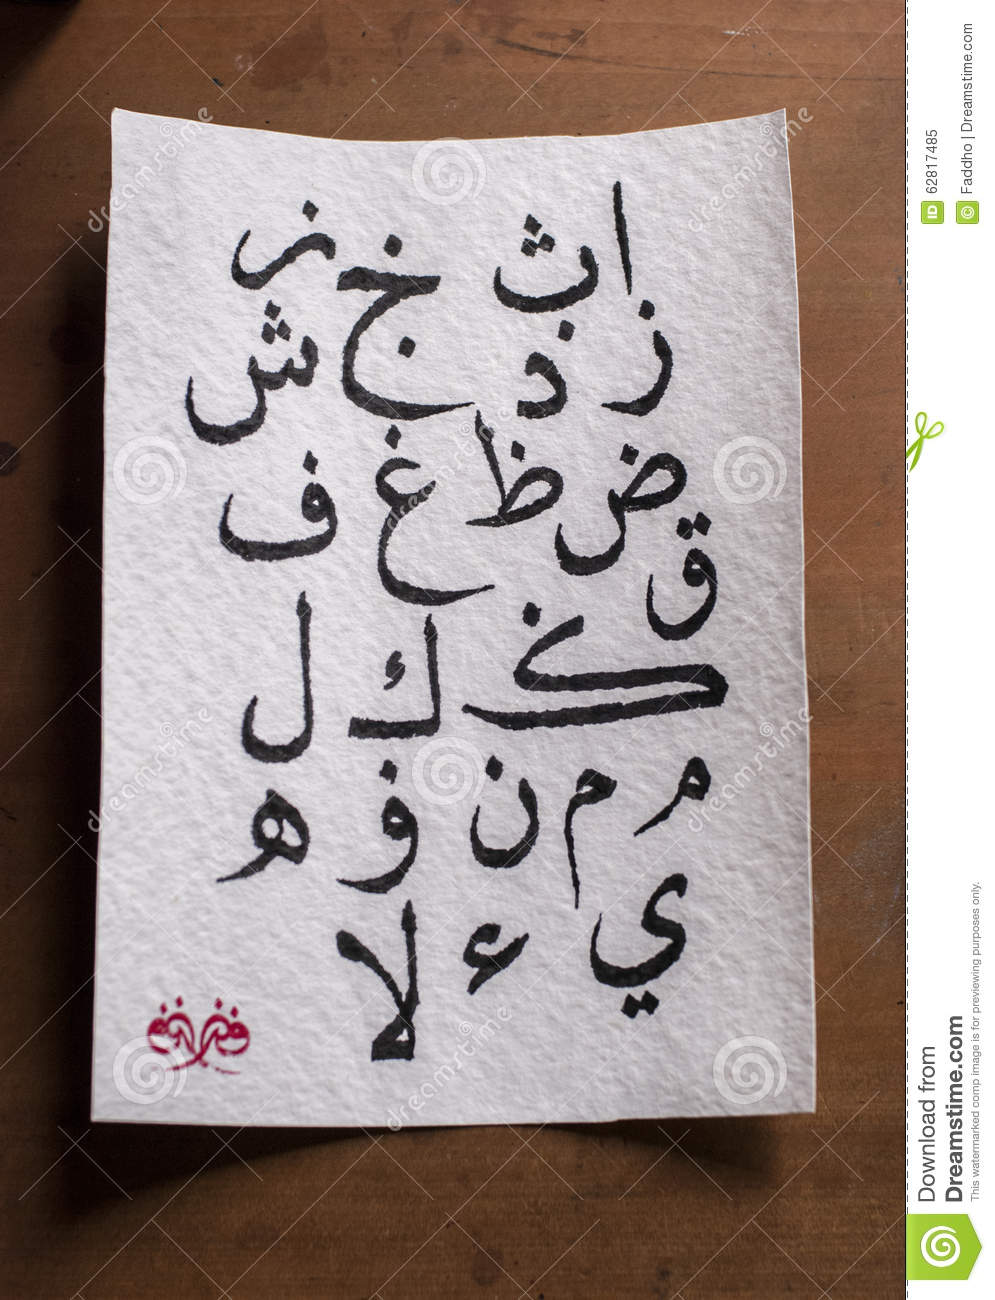 Arabic calligraphy of basic nasakh letters on rough paper Calligraphy basics